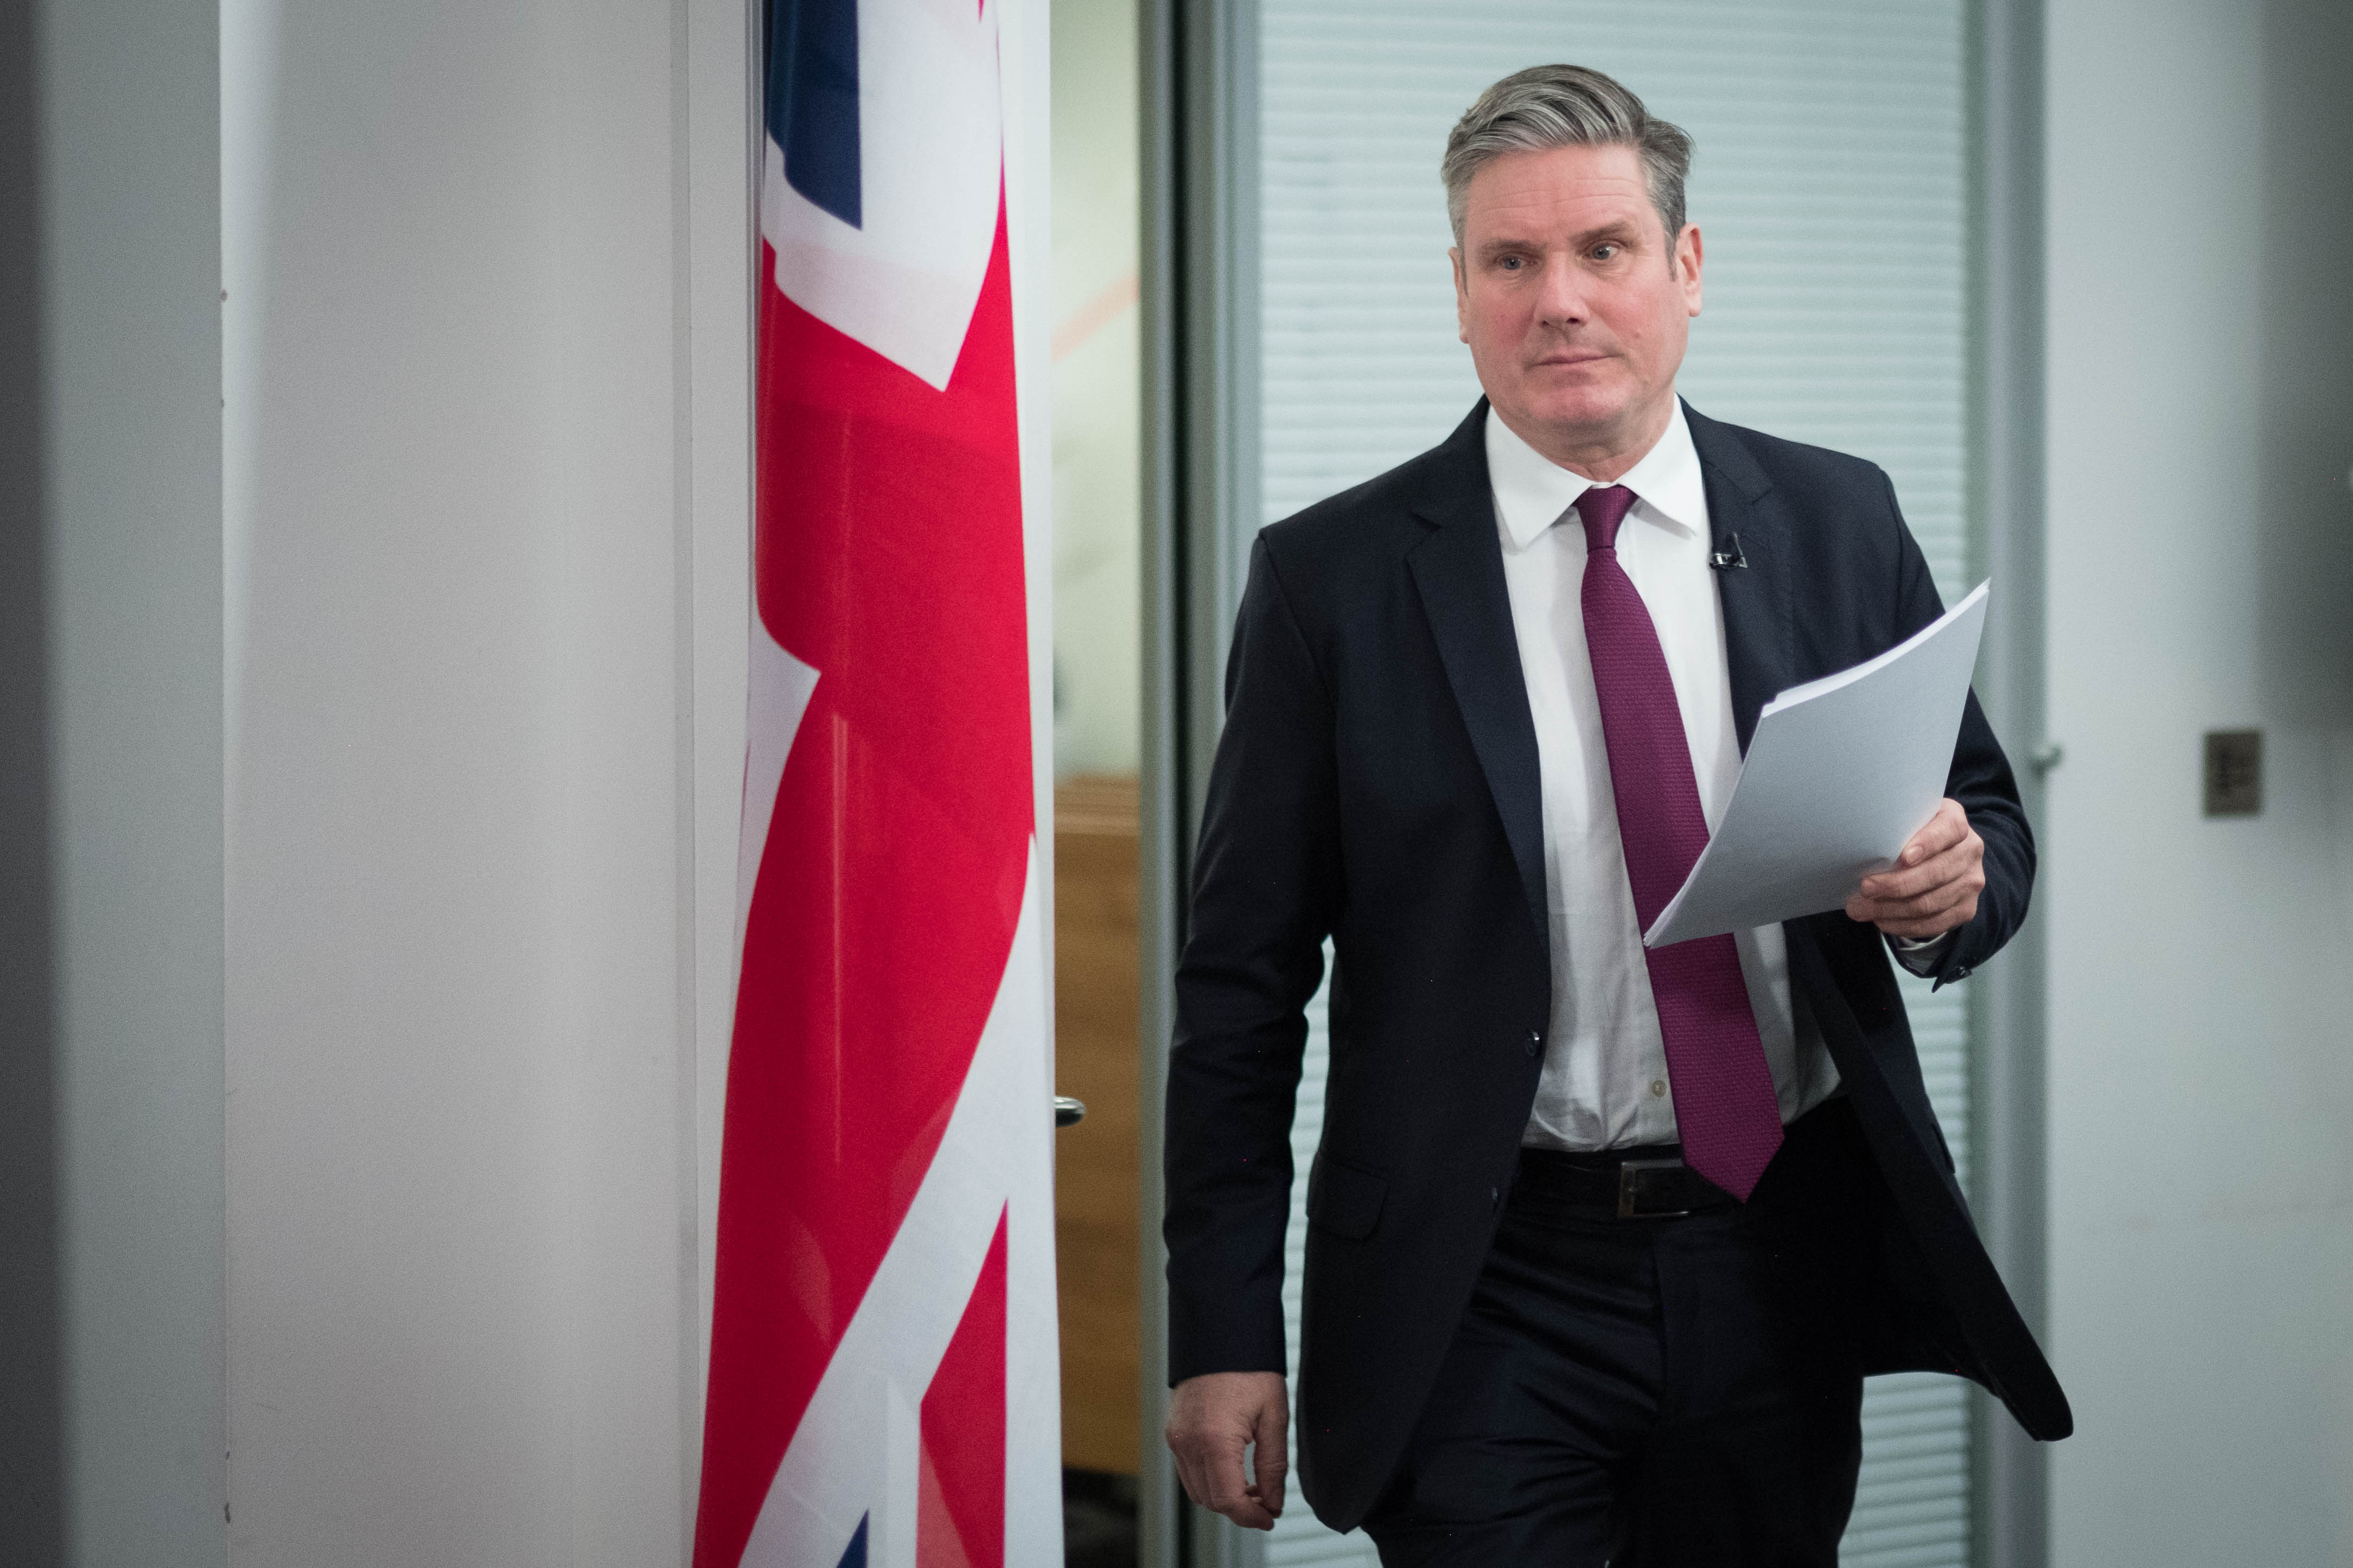 Starmer tells Johnson bereaved families 'deserve to know' when Covid inquiry will began as pressure grows on PM